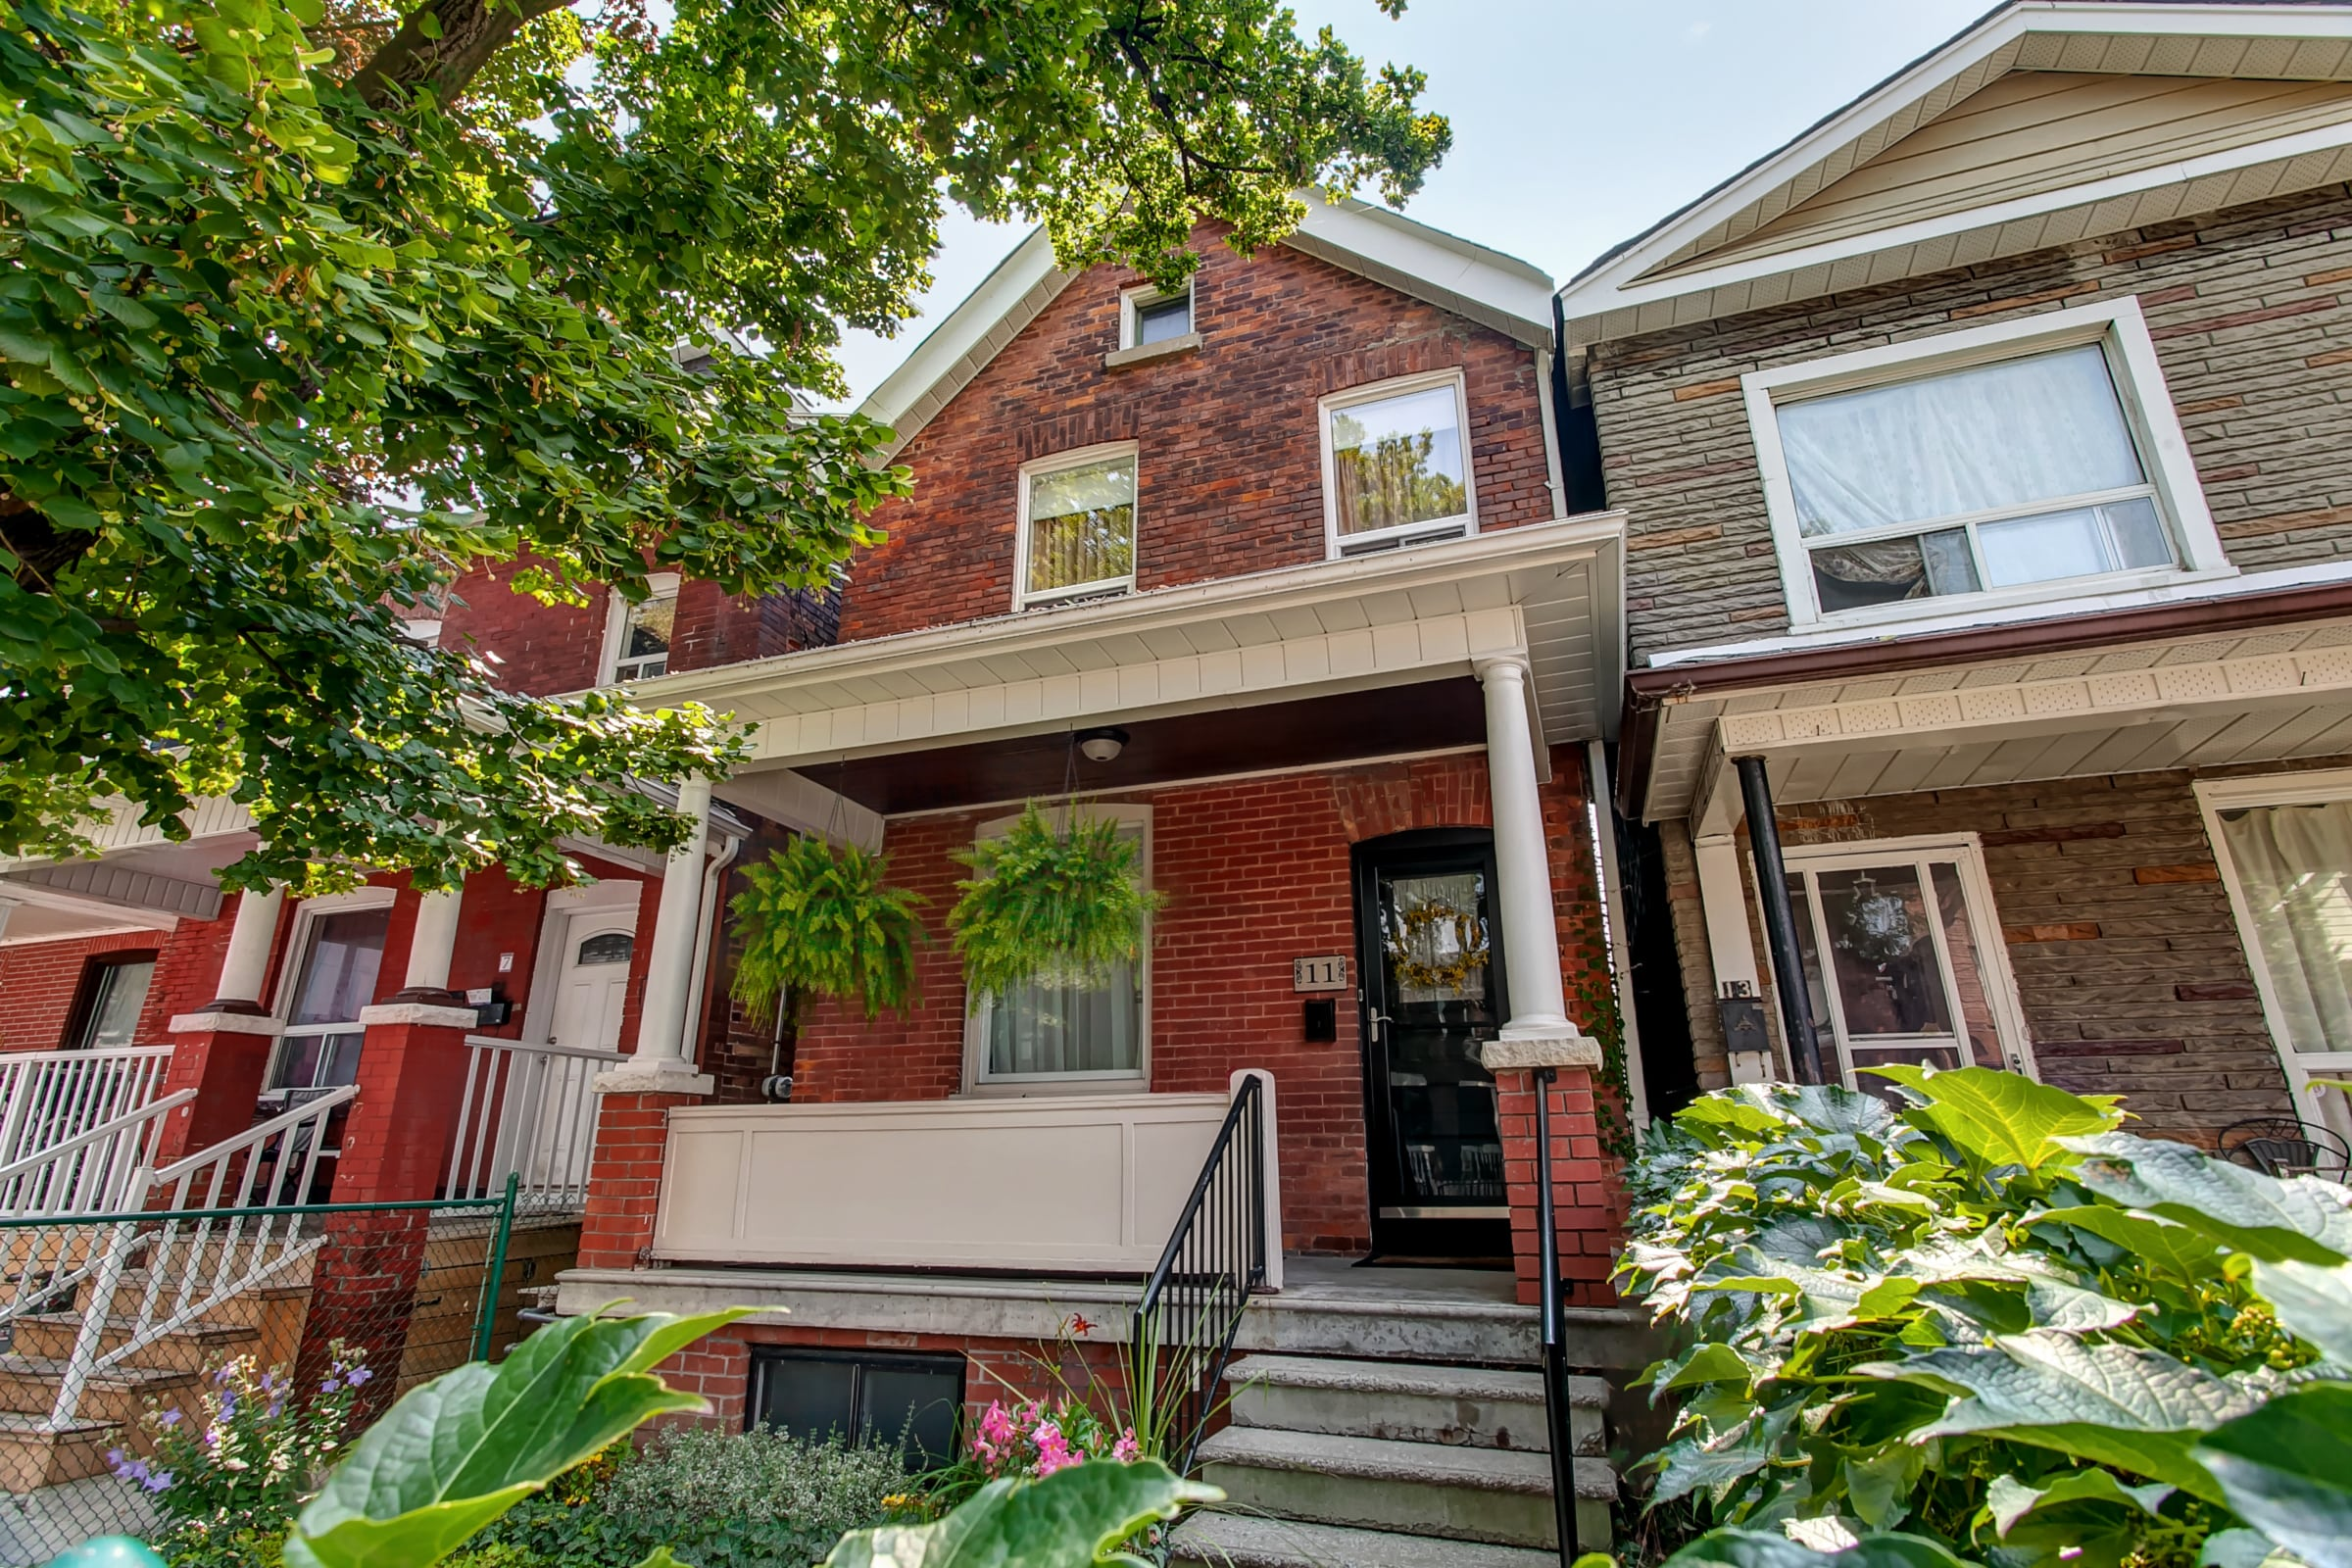 11 Chesley Ave: Coming Soon to Toronto MLS   Kate Watson